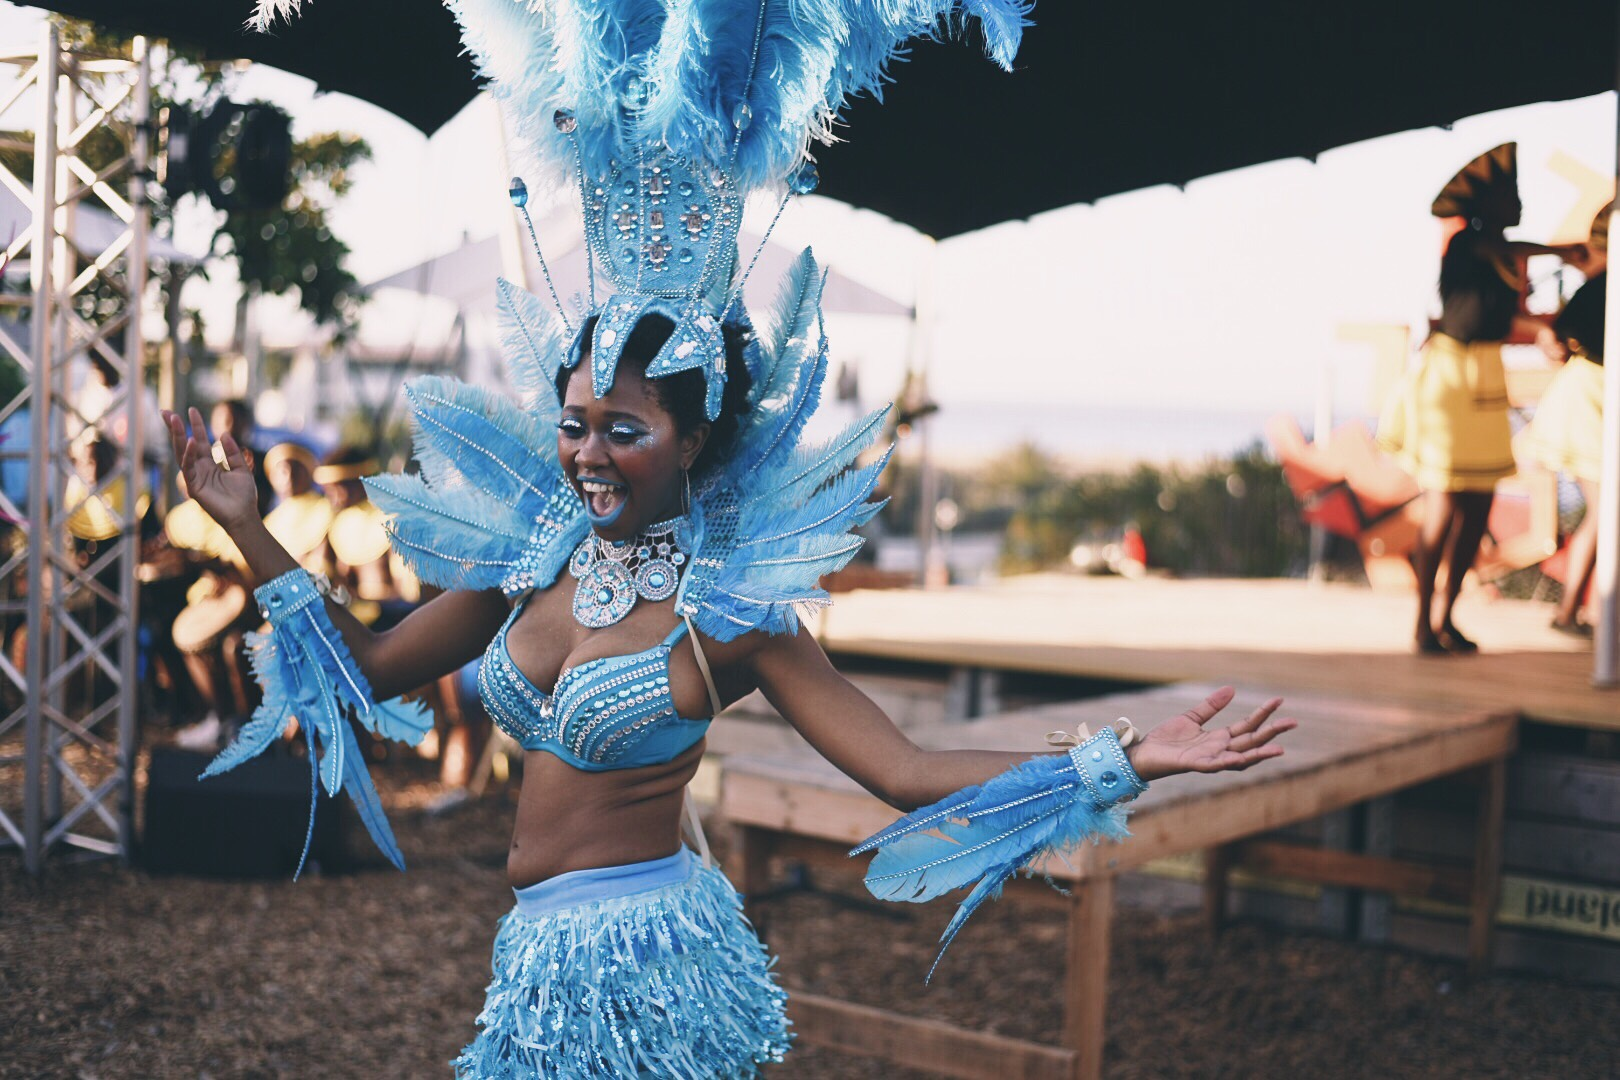 Cape Town Carnival Update: CAPE TOWN CARNIVAL CHANGES LIVES FOR THE BETTER